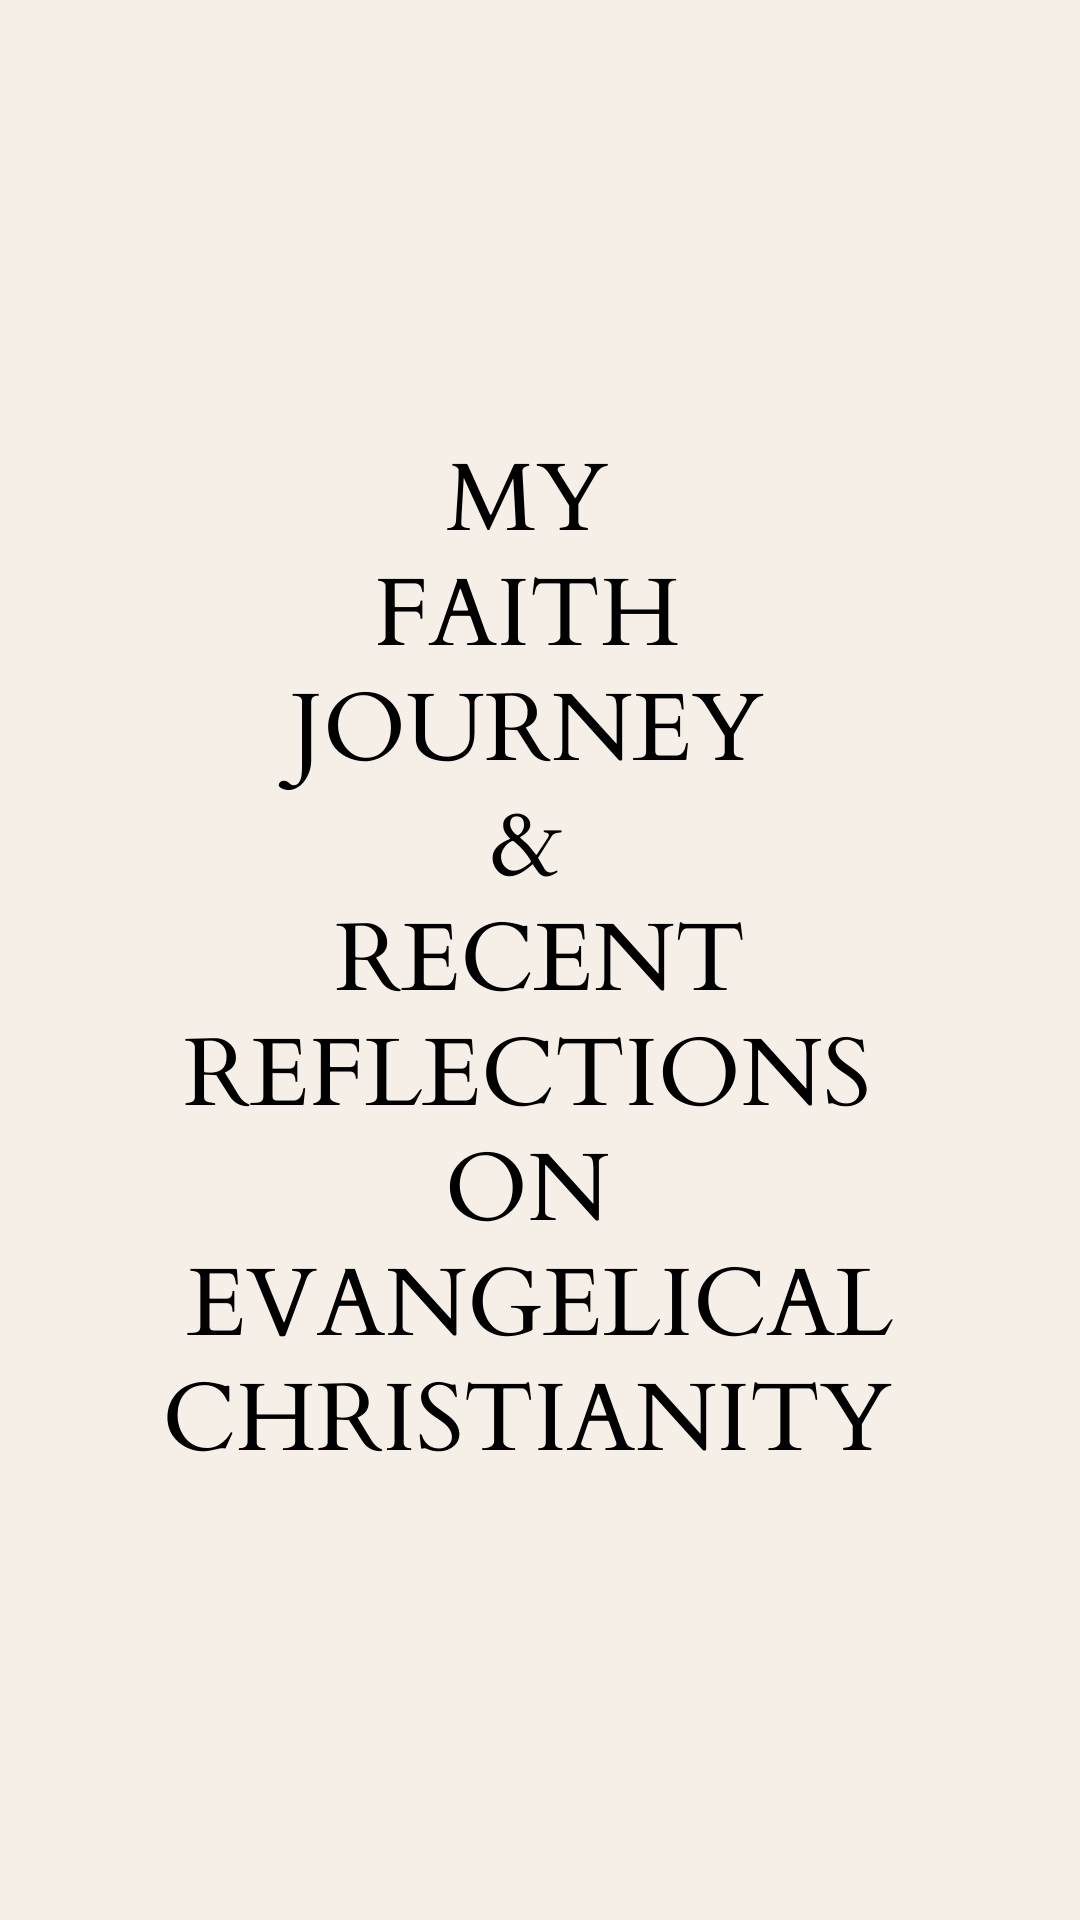 my faith journey & recent reflections on American Evangelical Christianity